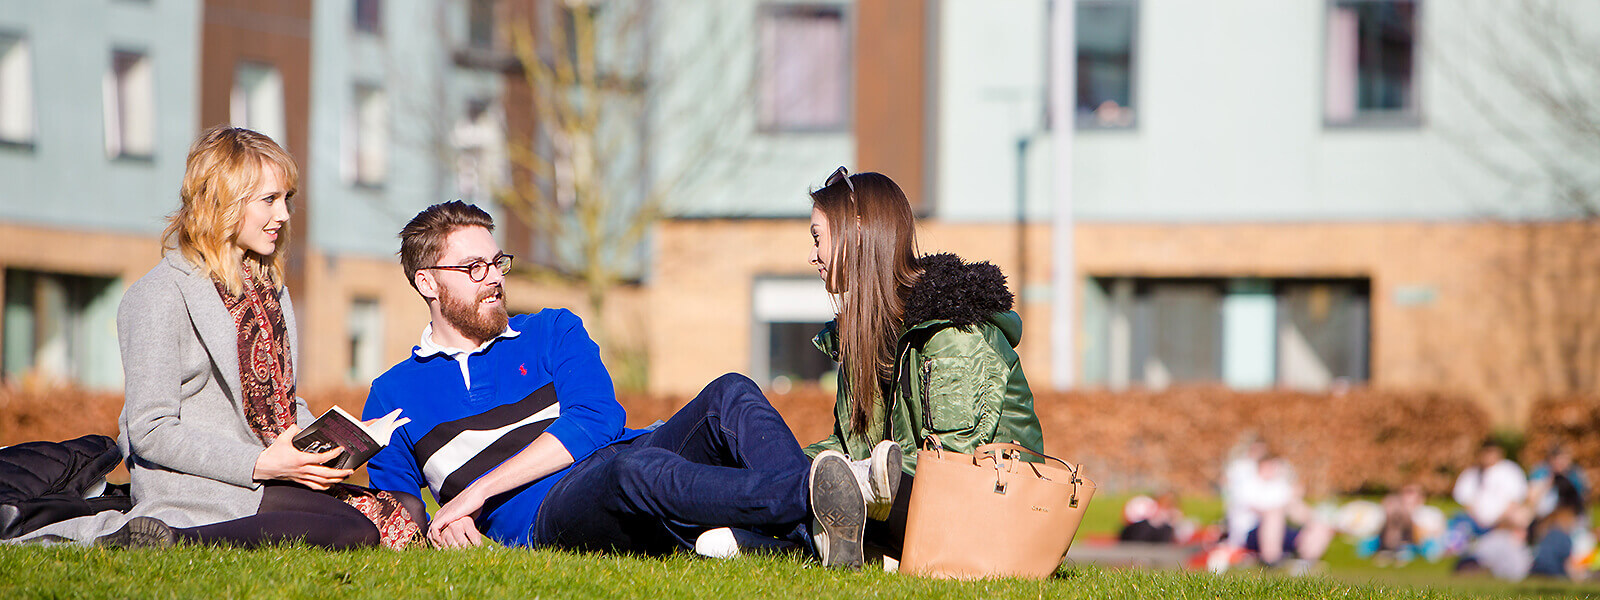 Students sitting on the grass at Lancaster University